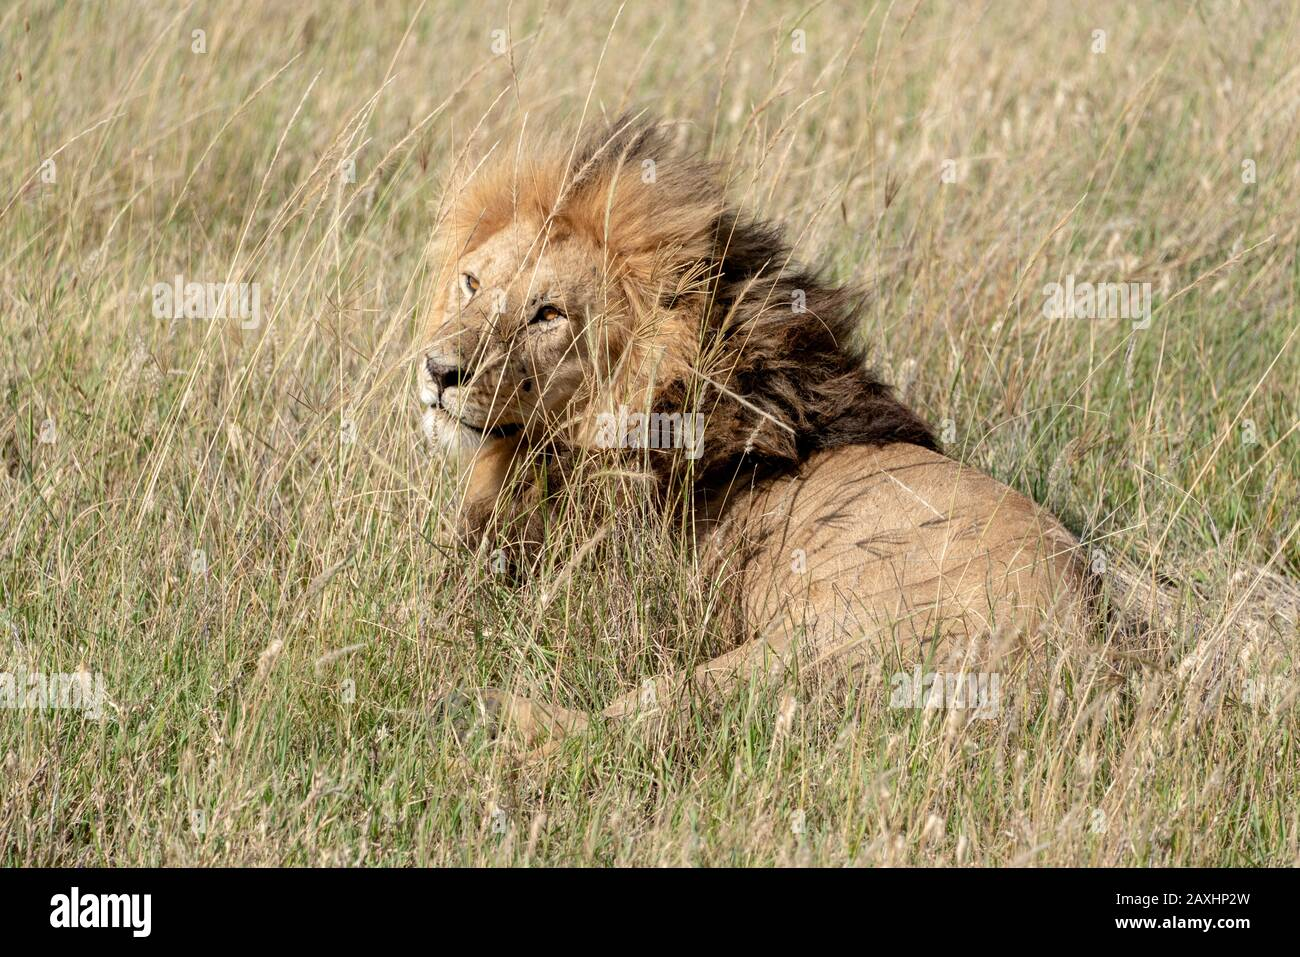 Handsome male Lion resting on the grasslands of the Serengeti National Park Stock Photo